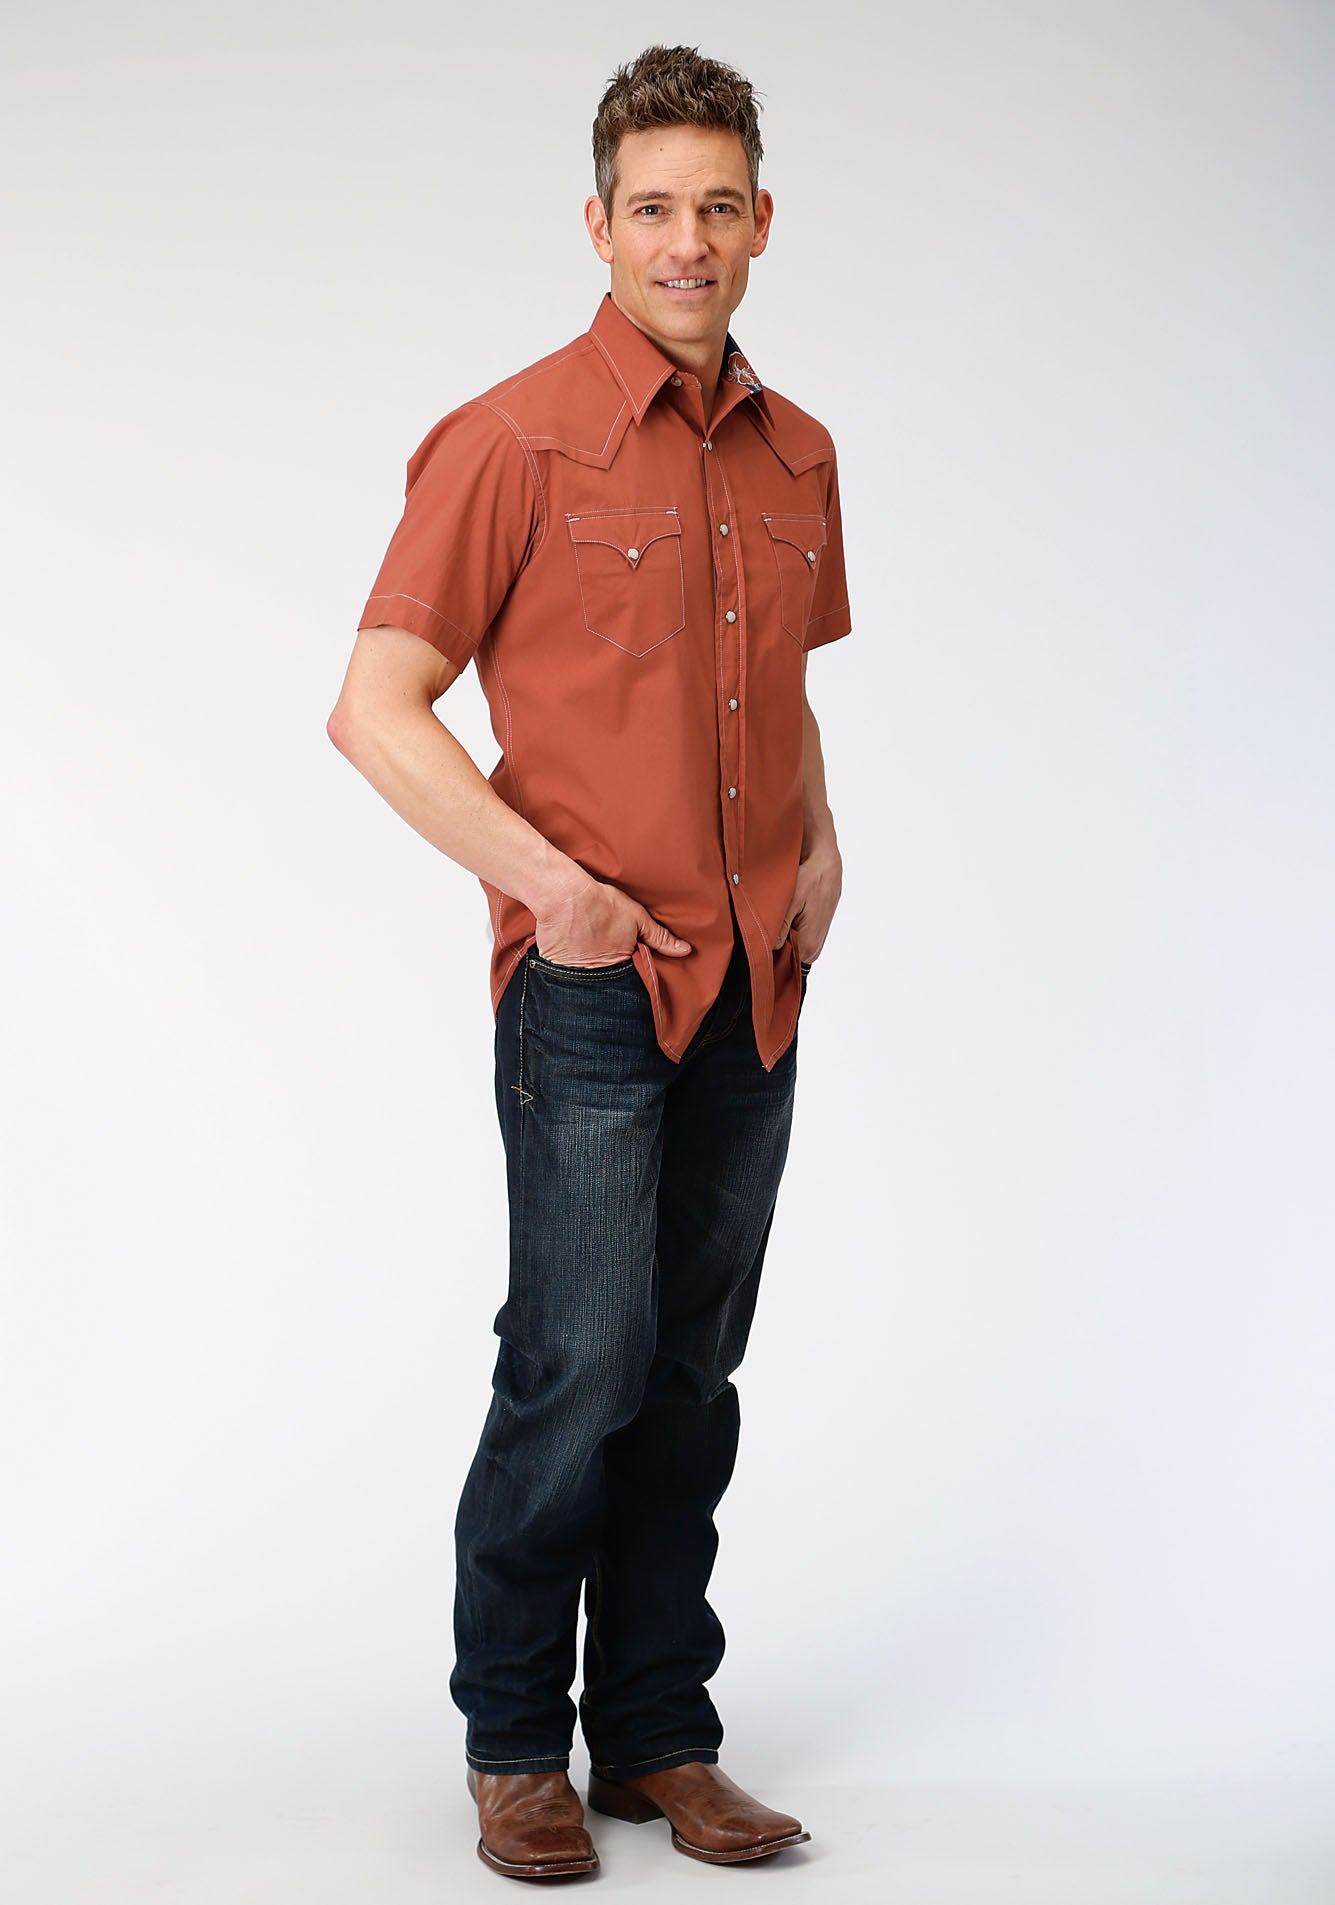 ROPER MENS ORANGE 00106 SOLID POPLIN - ORANGE WEST MADE COLLECTION SHORT SLEEVE